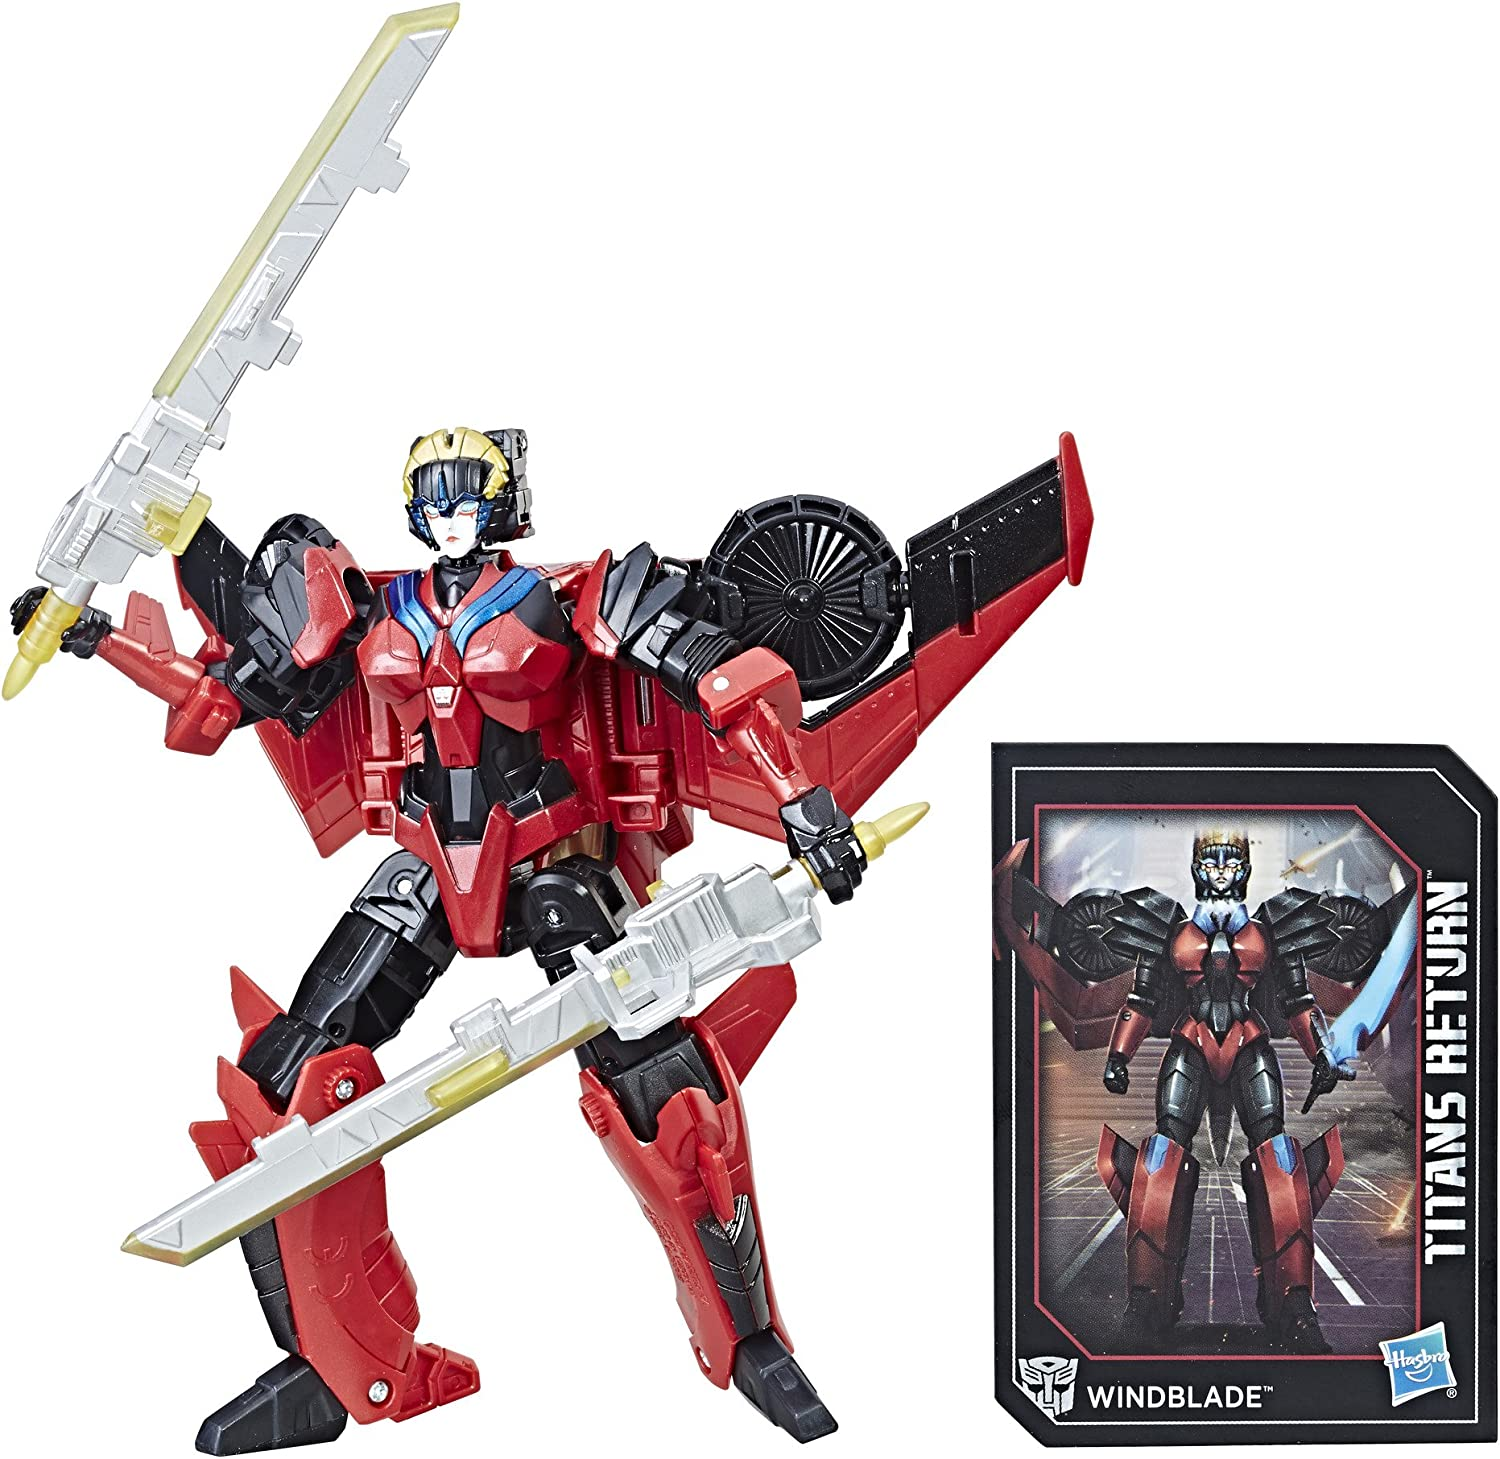 Transformers Generations Titans Return Windblade 信憑 and Scor 保証 Deluxe